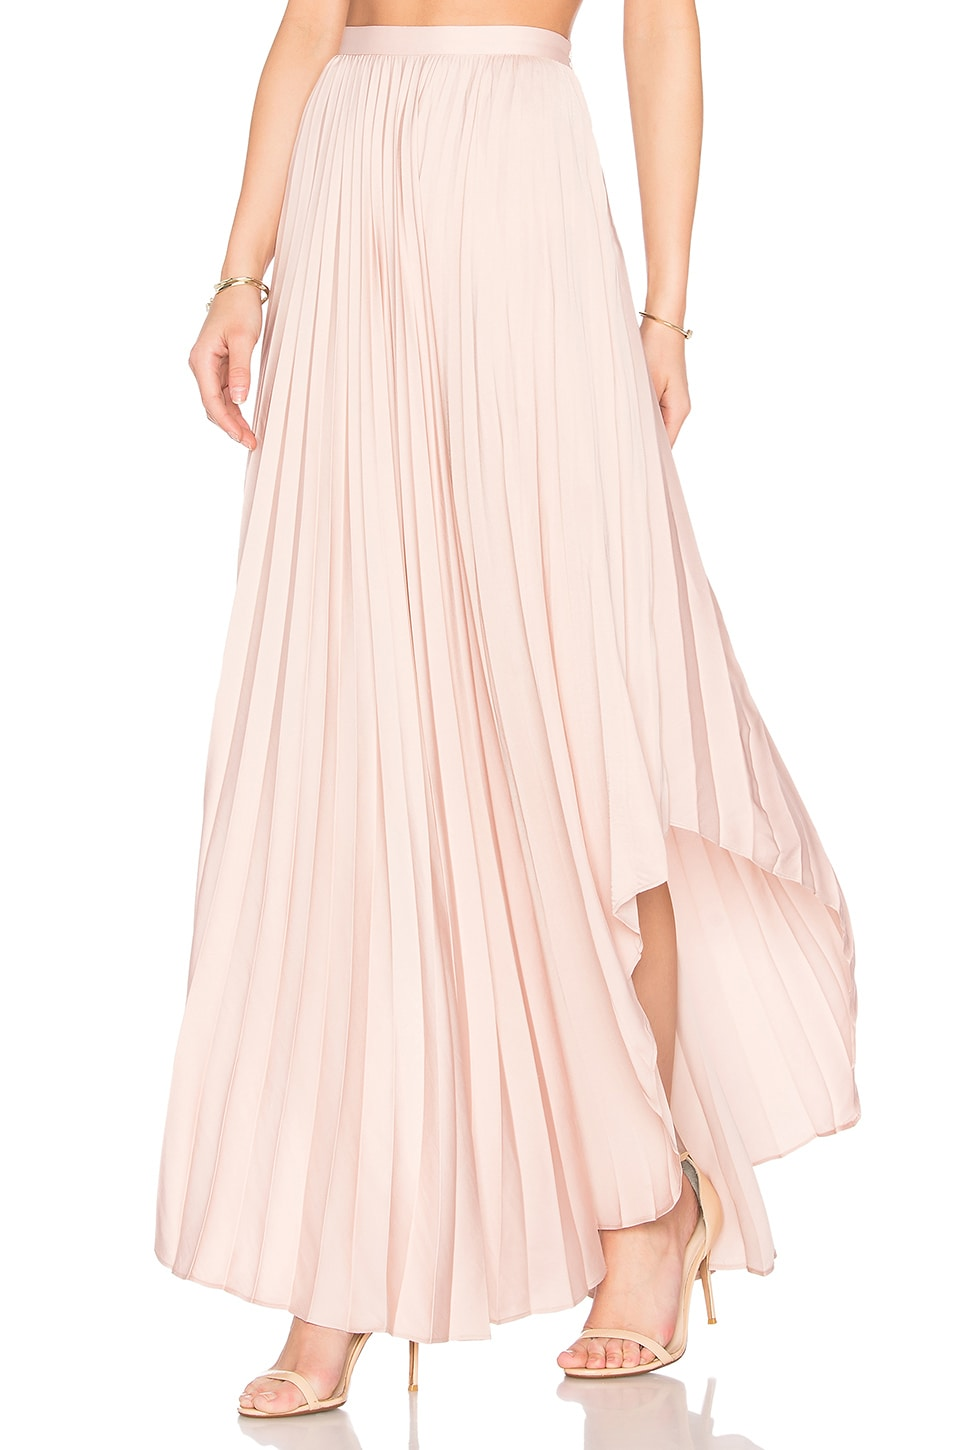 Dolce Vita Camryn Maxi Skirt in Dusty Rose